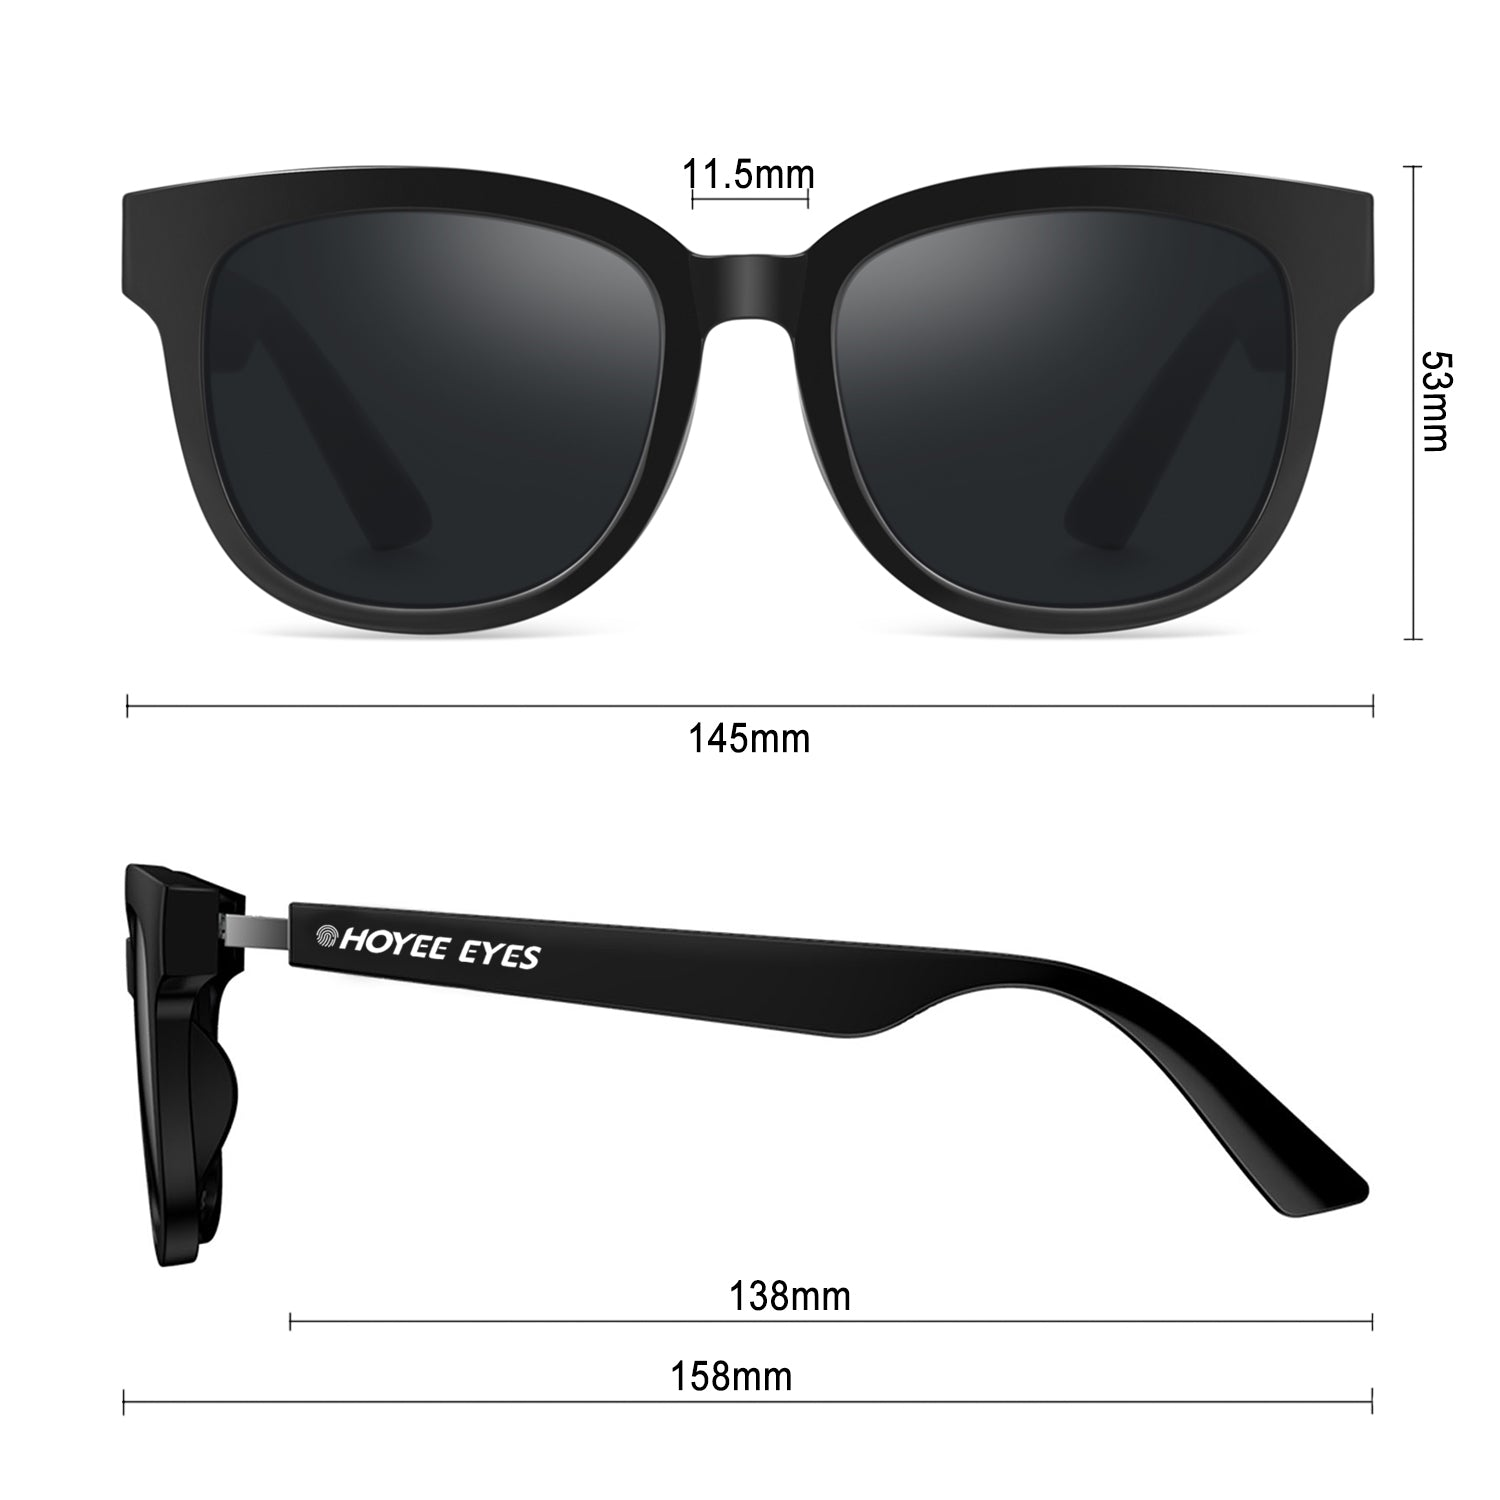 hoyee eyes nova smart sunglasses dimensions